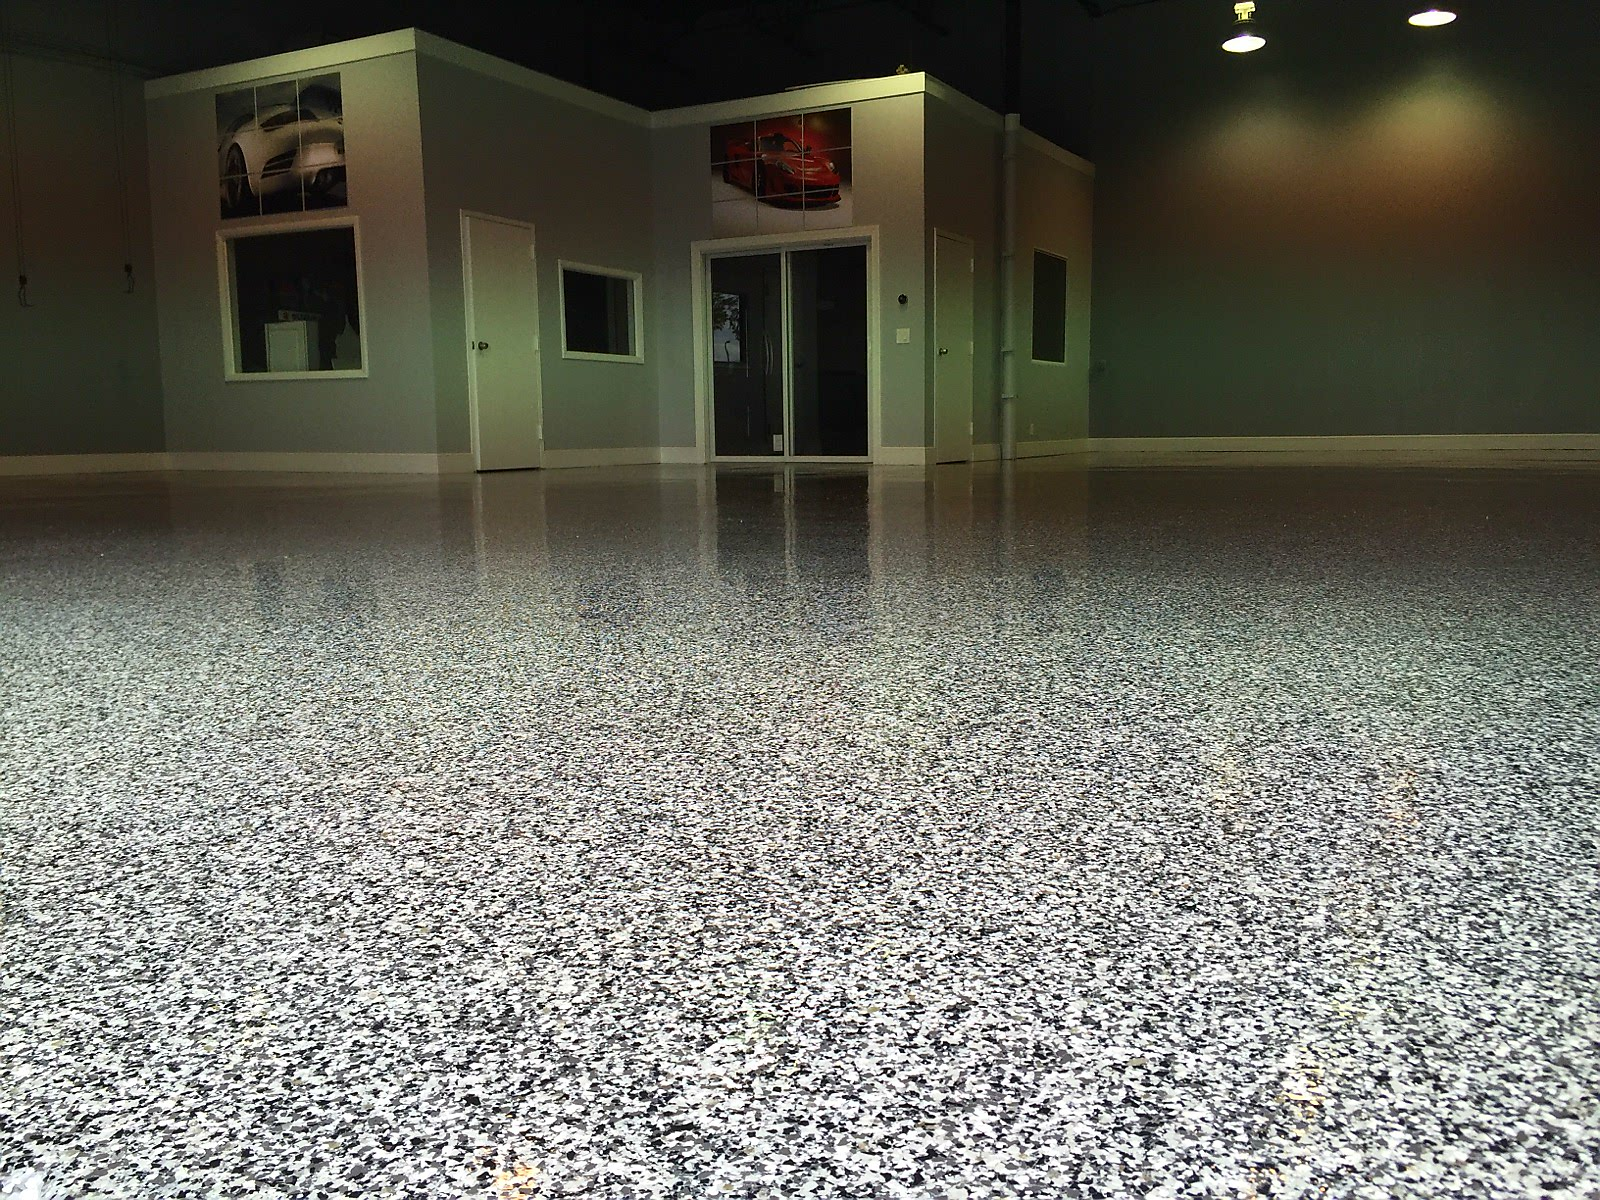 WHY WE STAND OUT FROM THE CROWD. - We have been in the epoxy installation industry for 20+ years, providing South Florida businesses & warehouses with high quality flooring! We are the most trusted epoxy flooring contractors in South Florida, and we want to help youCall now to find out more!!